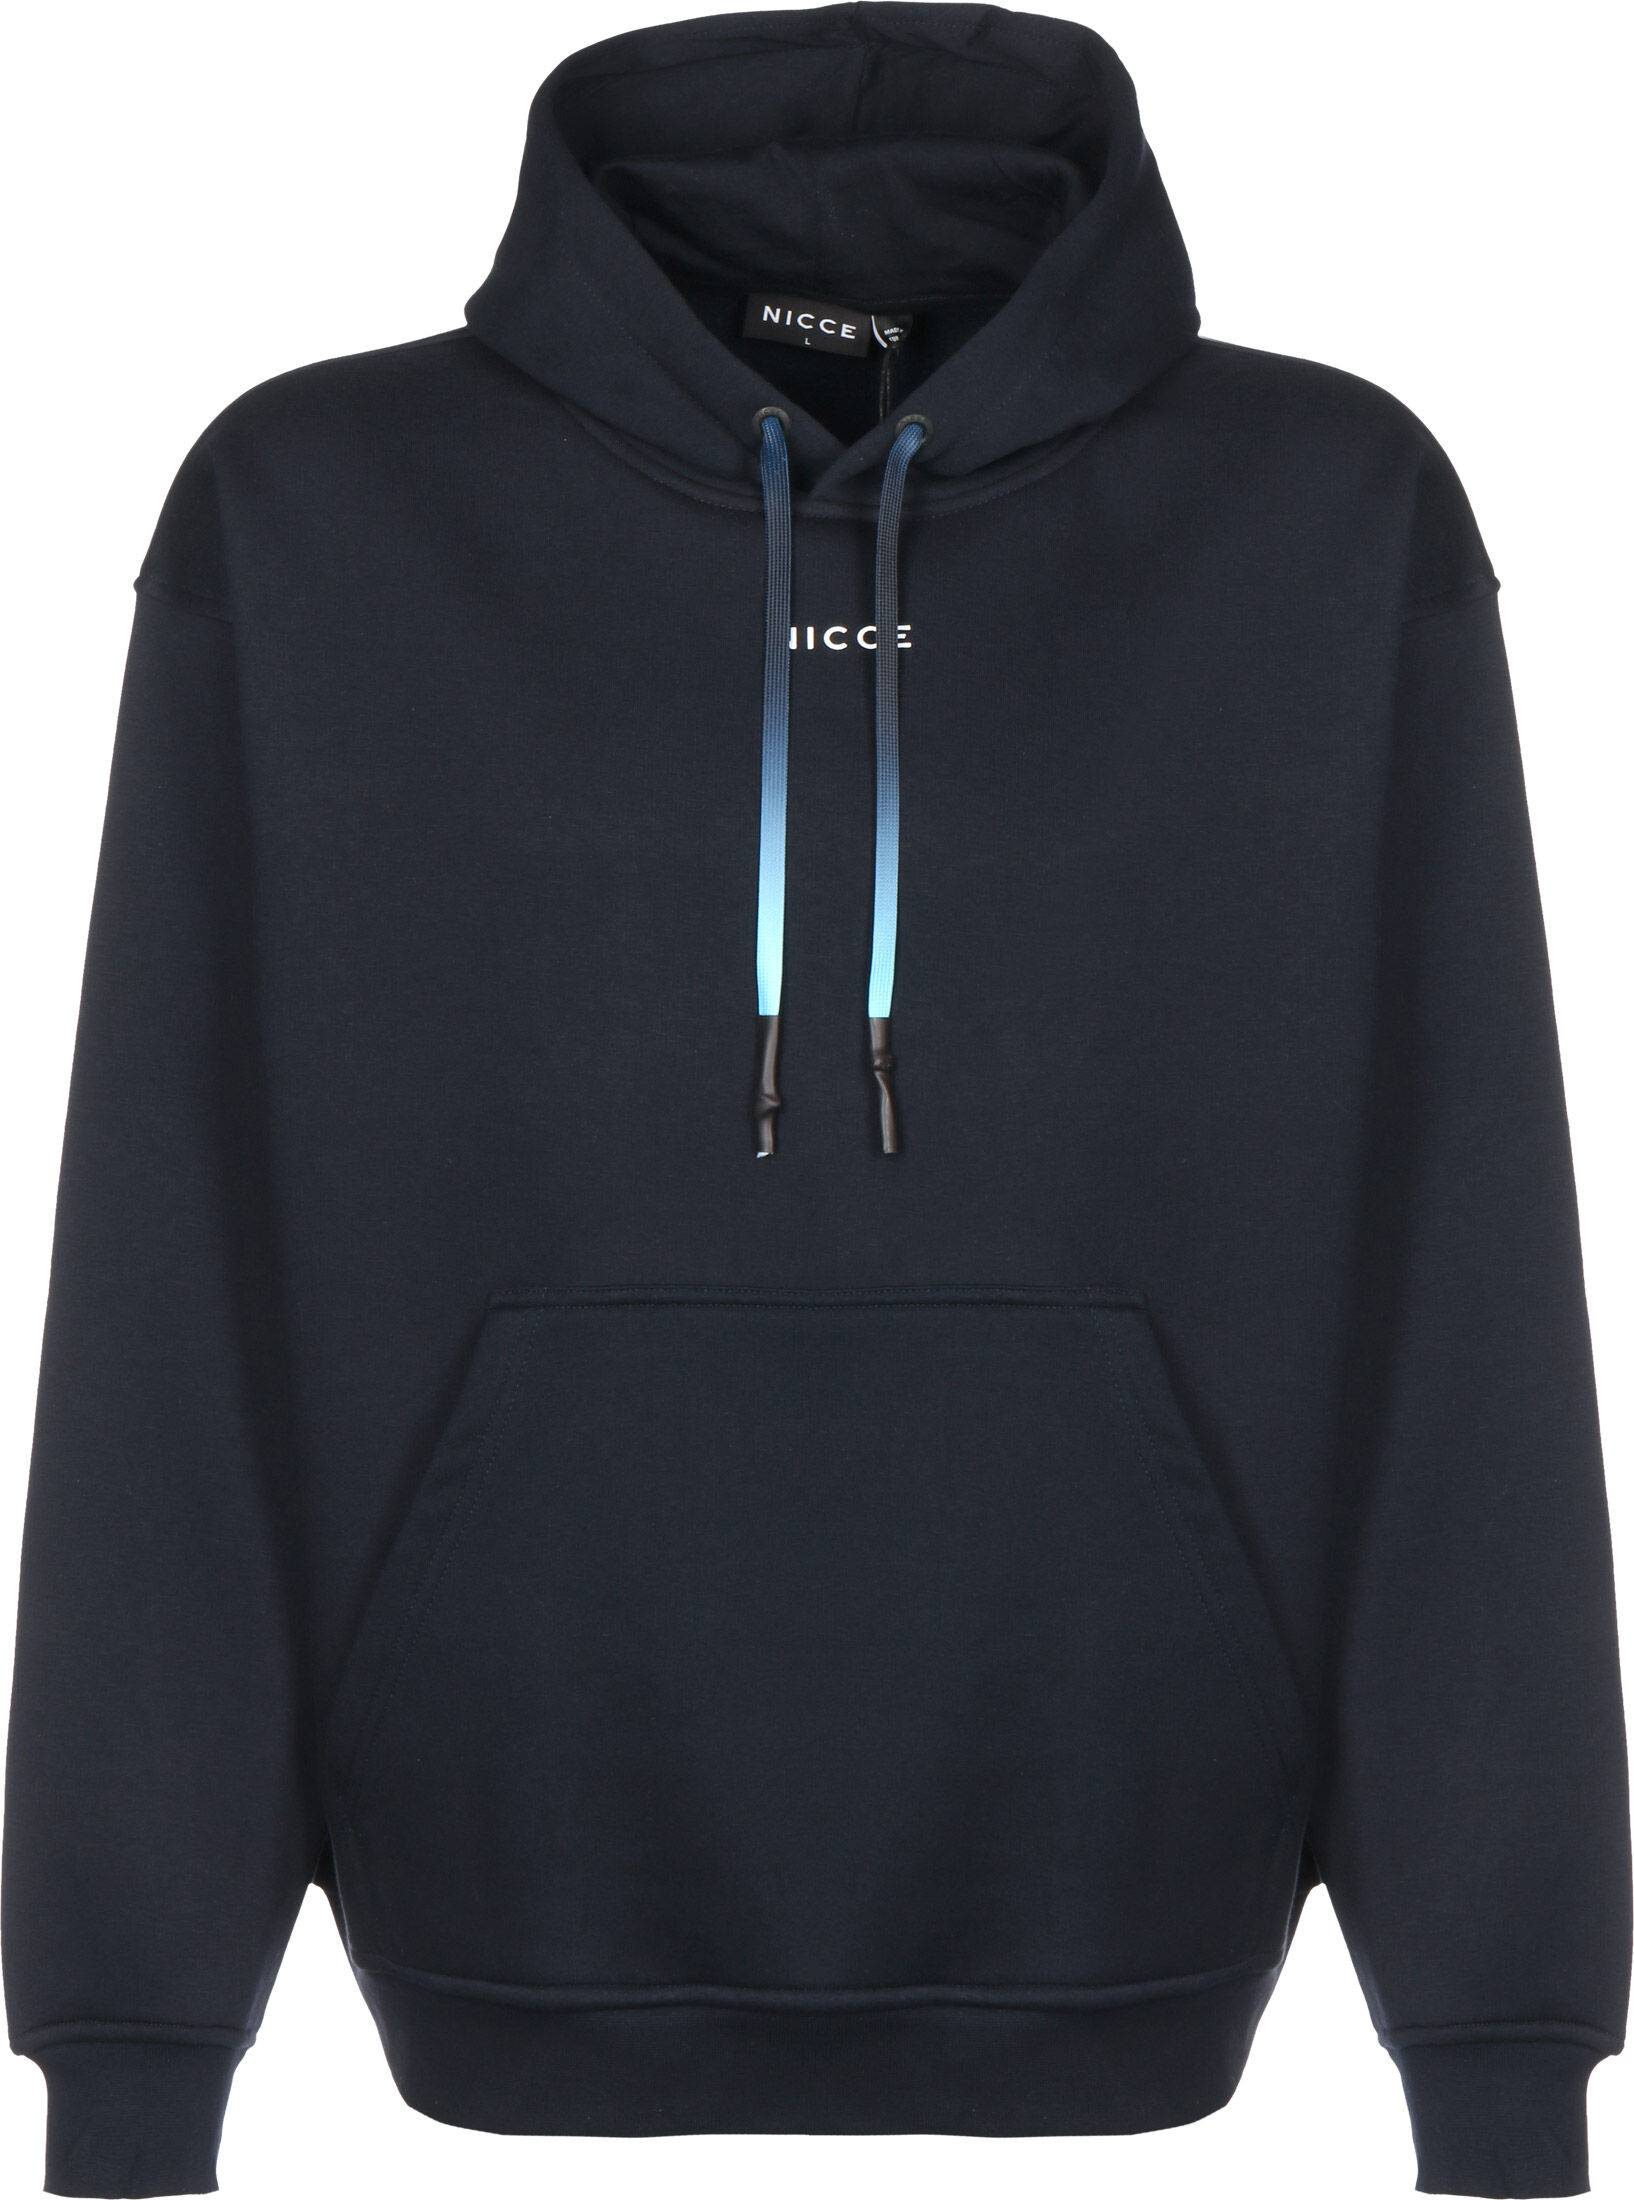 Nicce Zone, taille S, homme, bleu